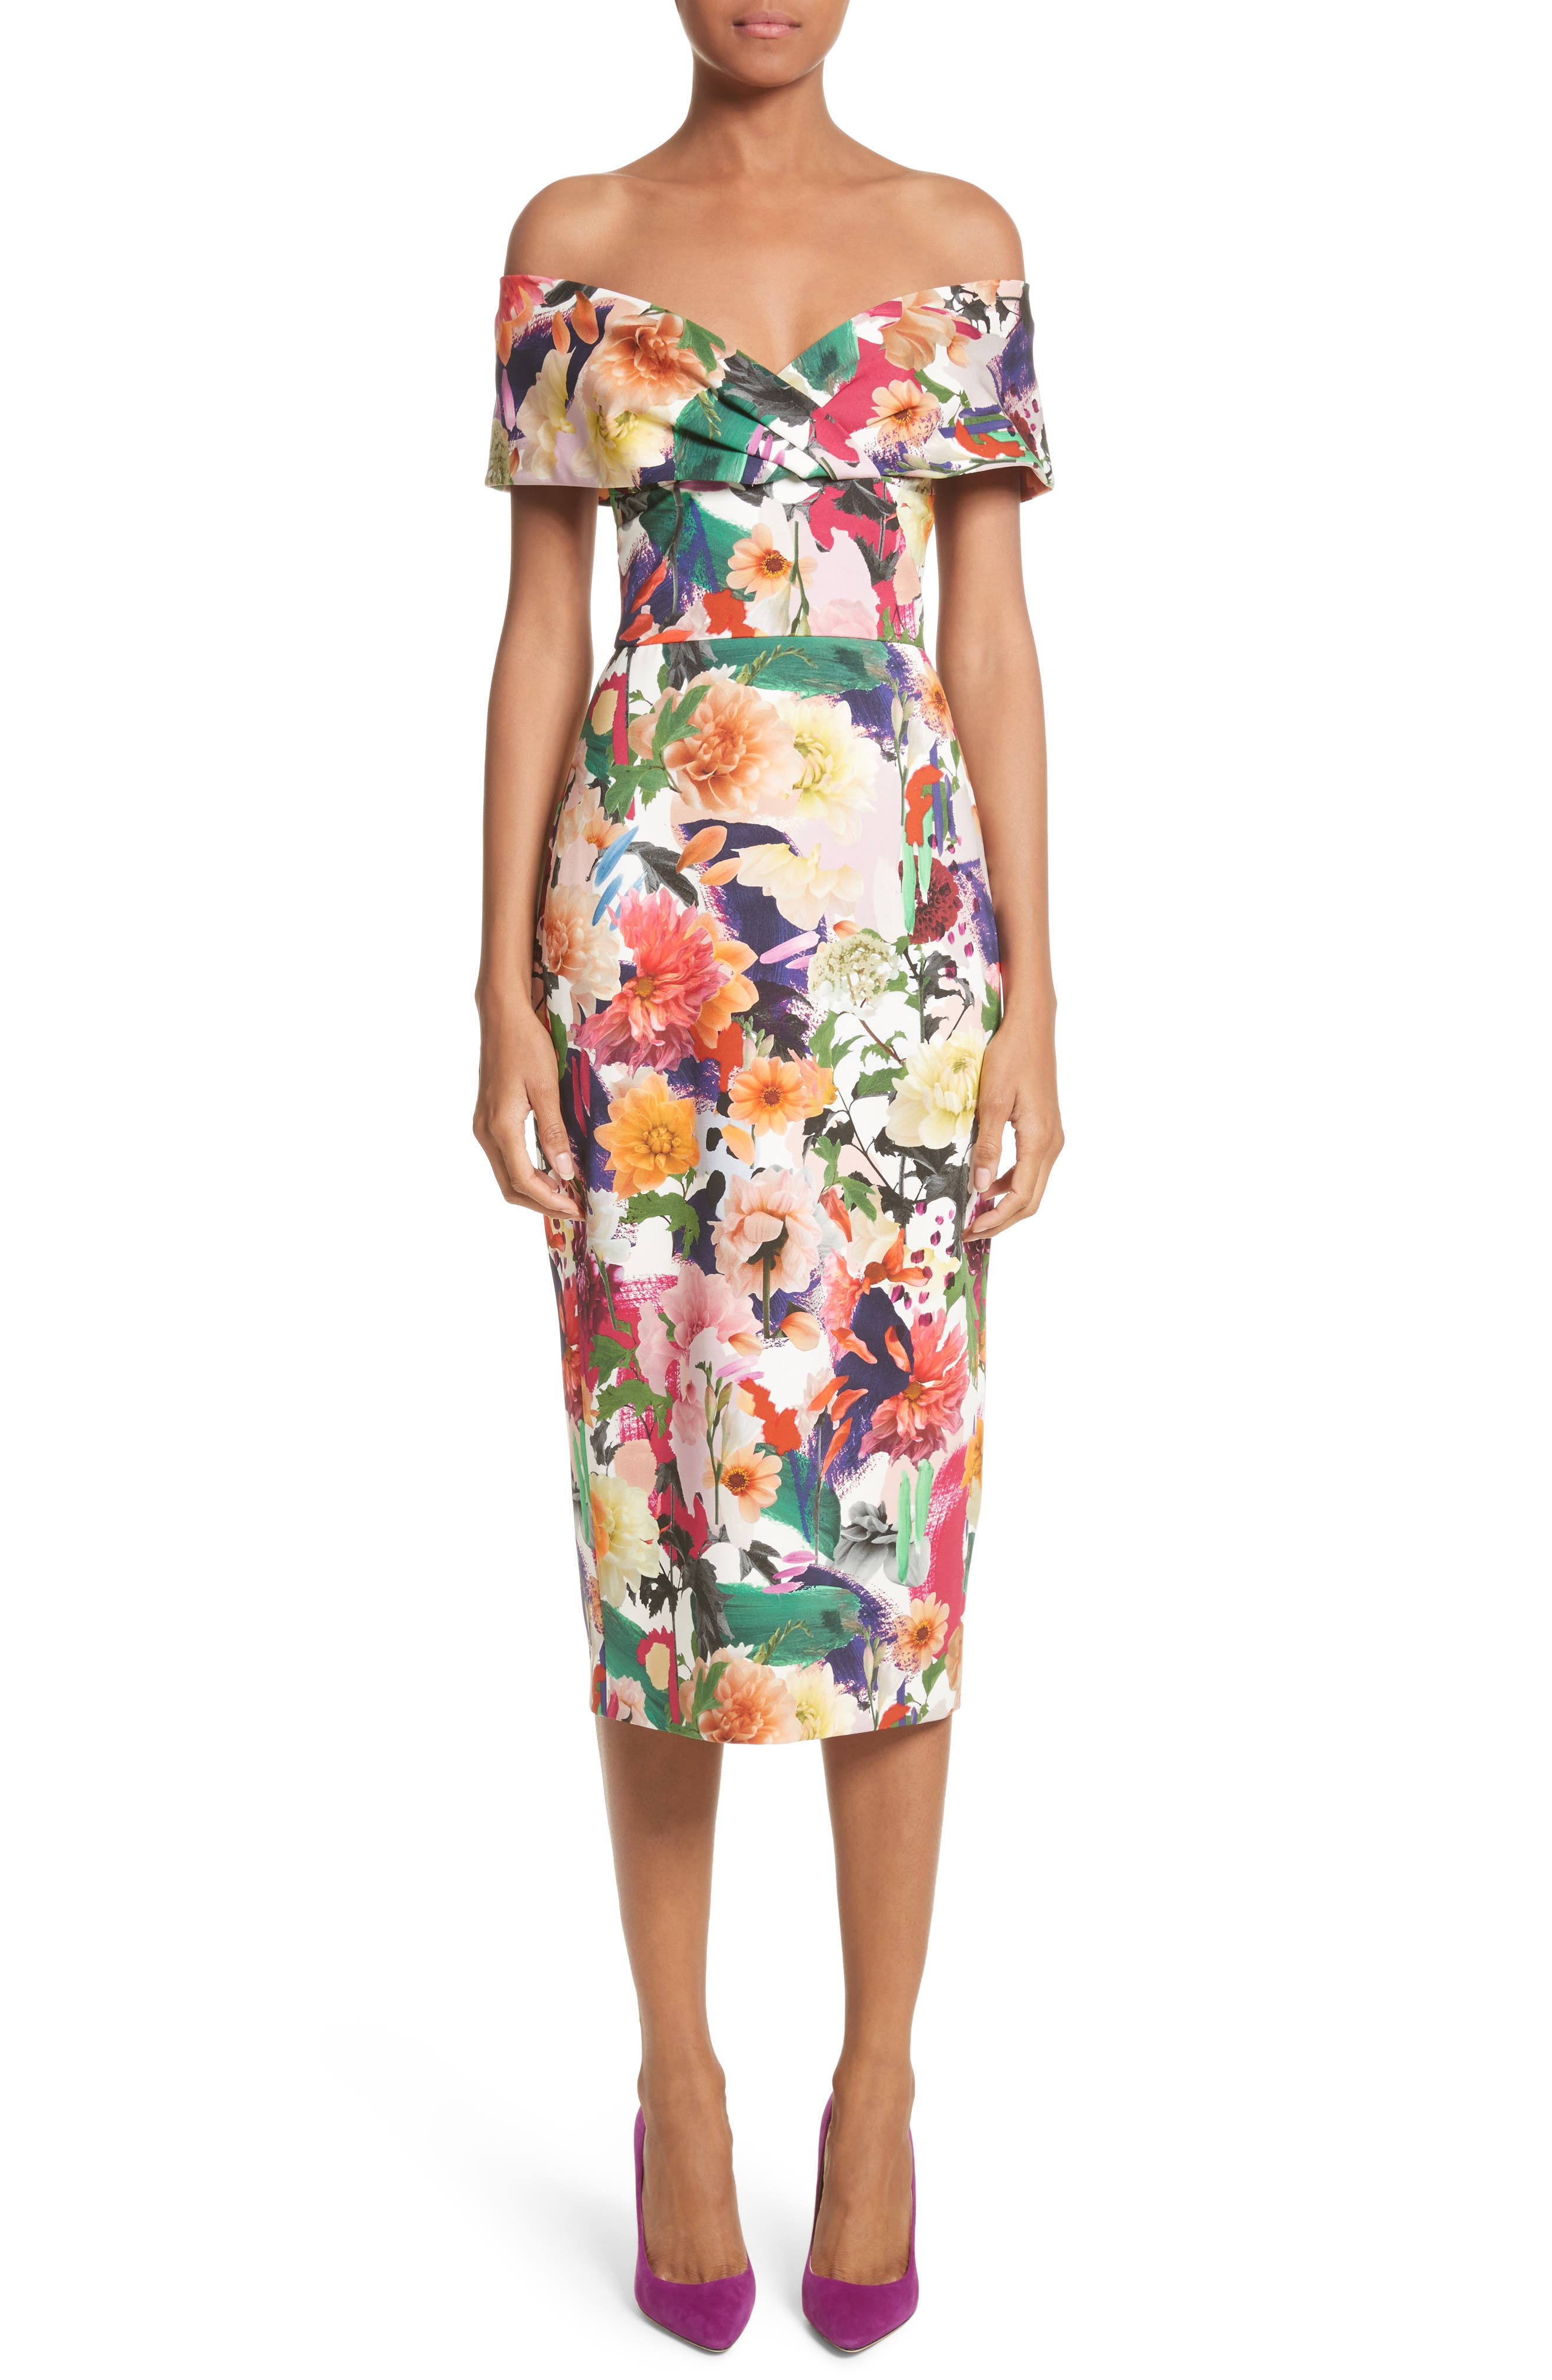 Cushnie et Ochs Floral Print Off the Shoulder Sheath Dress